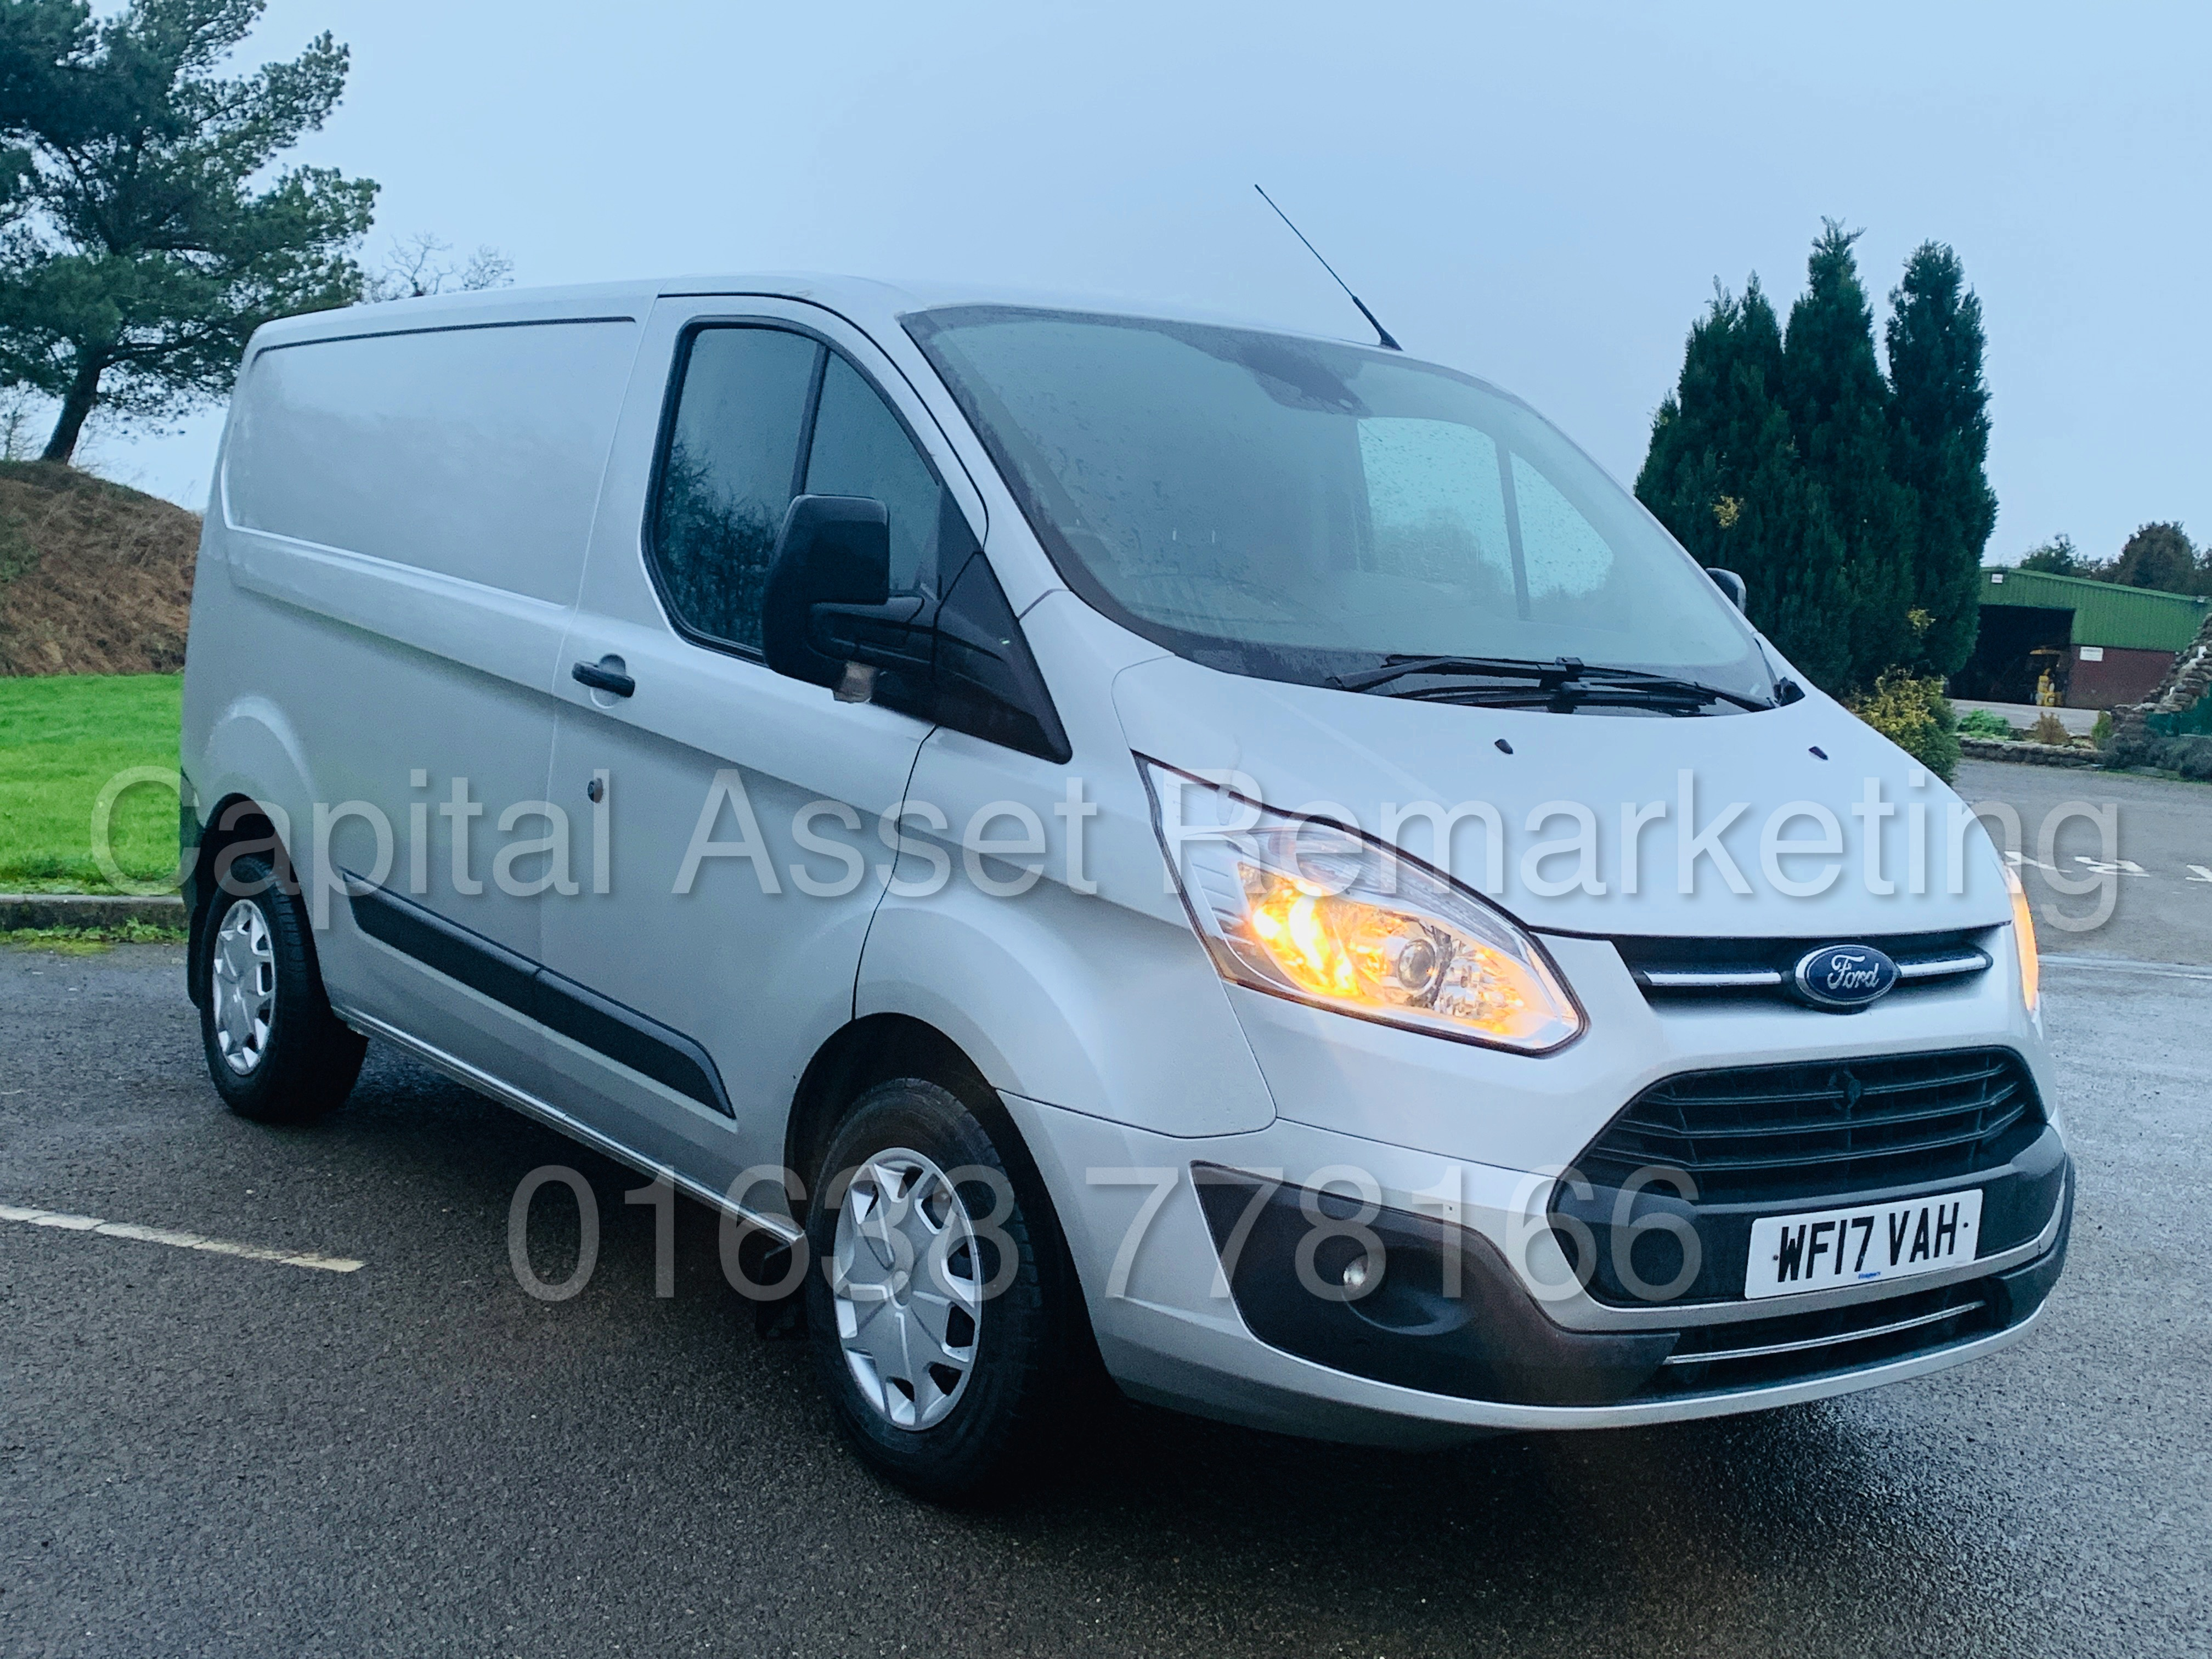 (On Sale) FORD TRANSIT *TREND* 290 SWB (2017 - EURO 6 / AD-BLUE) '2.0 TDCI - 130 BHP - 6 SPEED' - Image 3 of 41